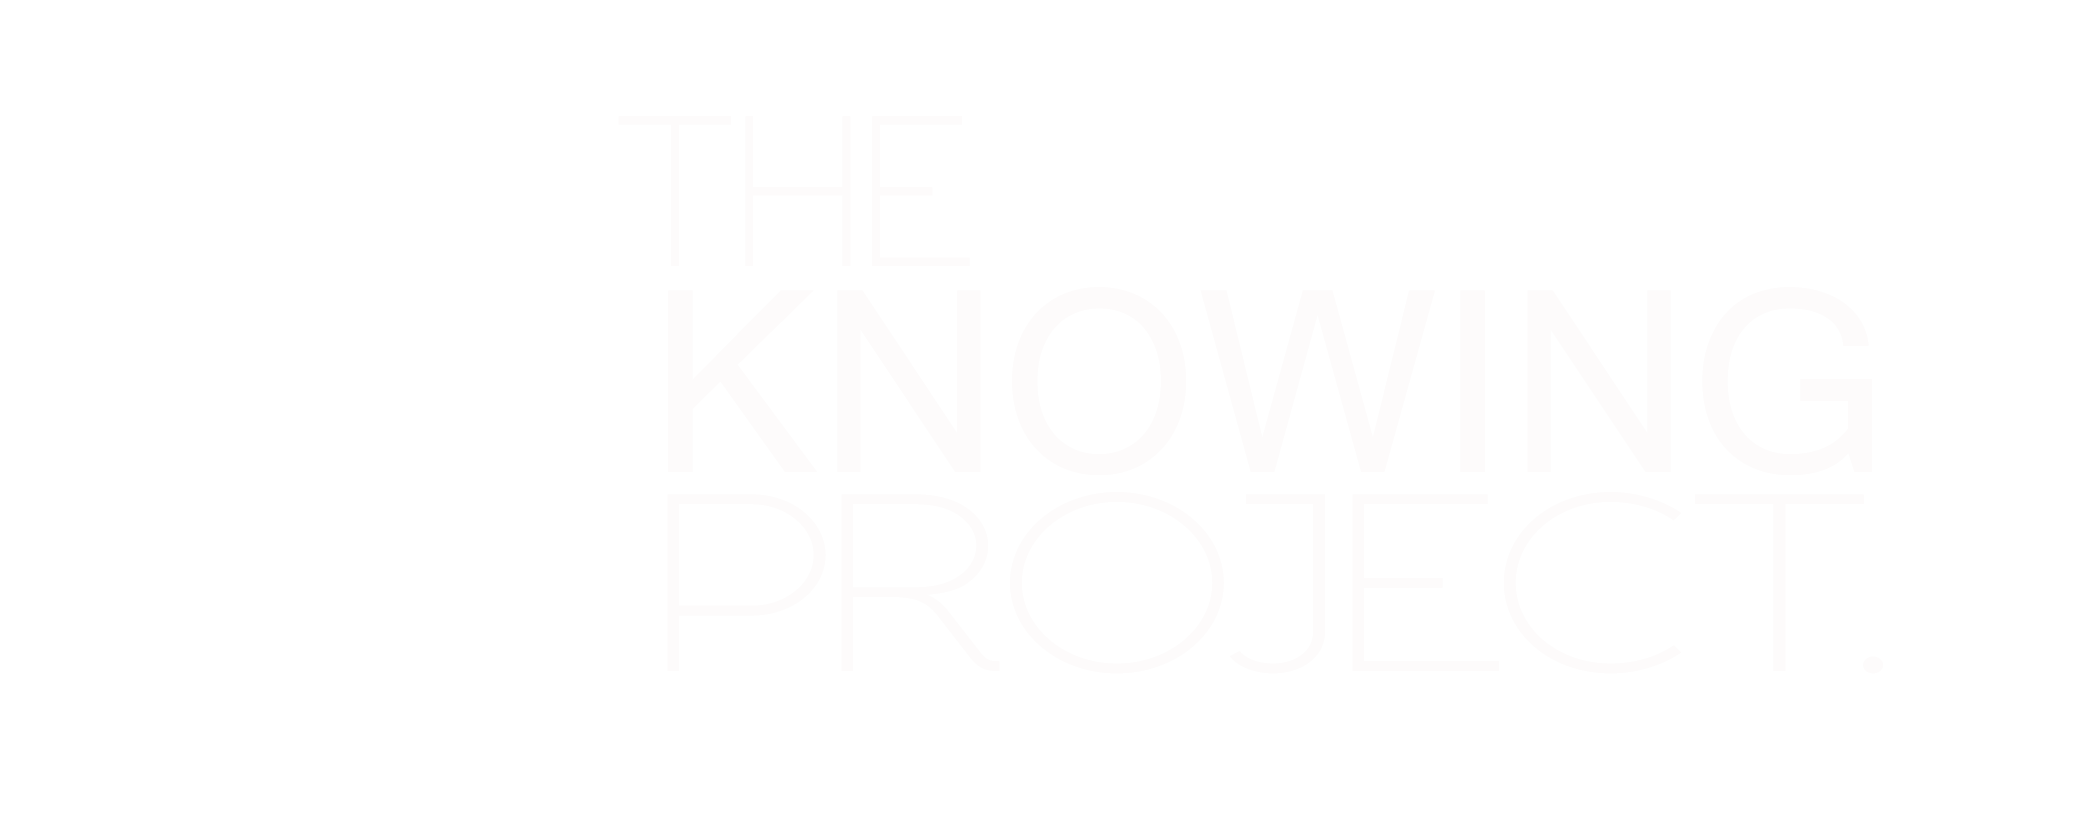 knowing project white logo transp bkground.png